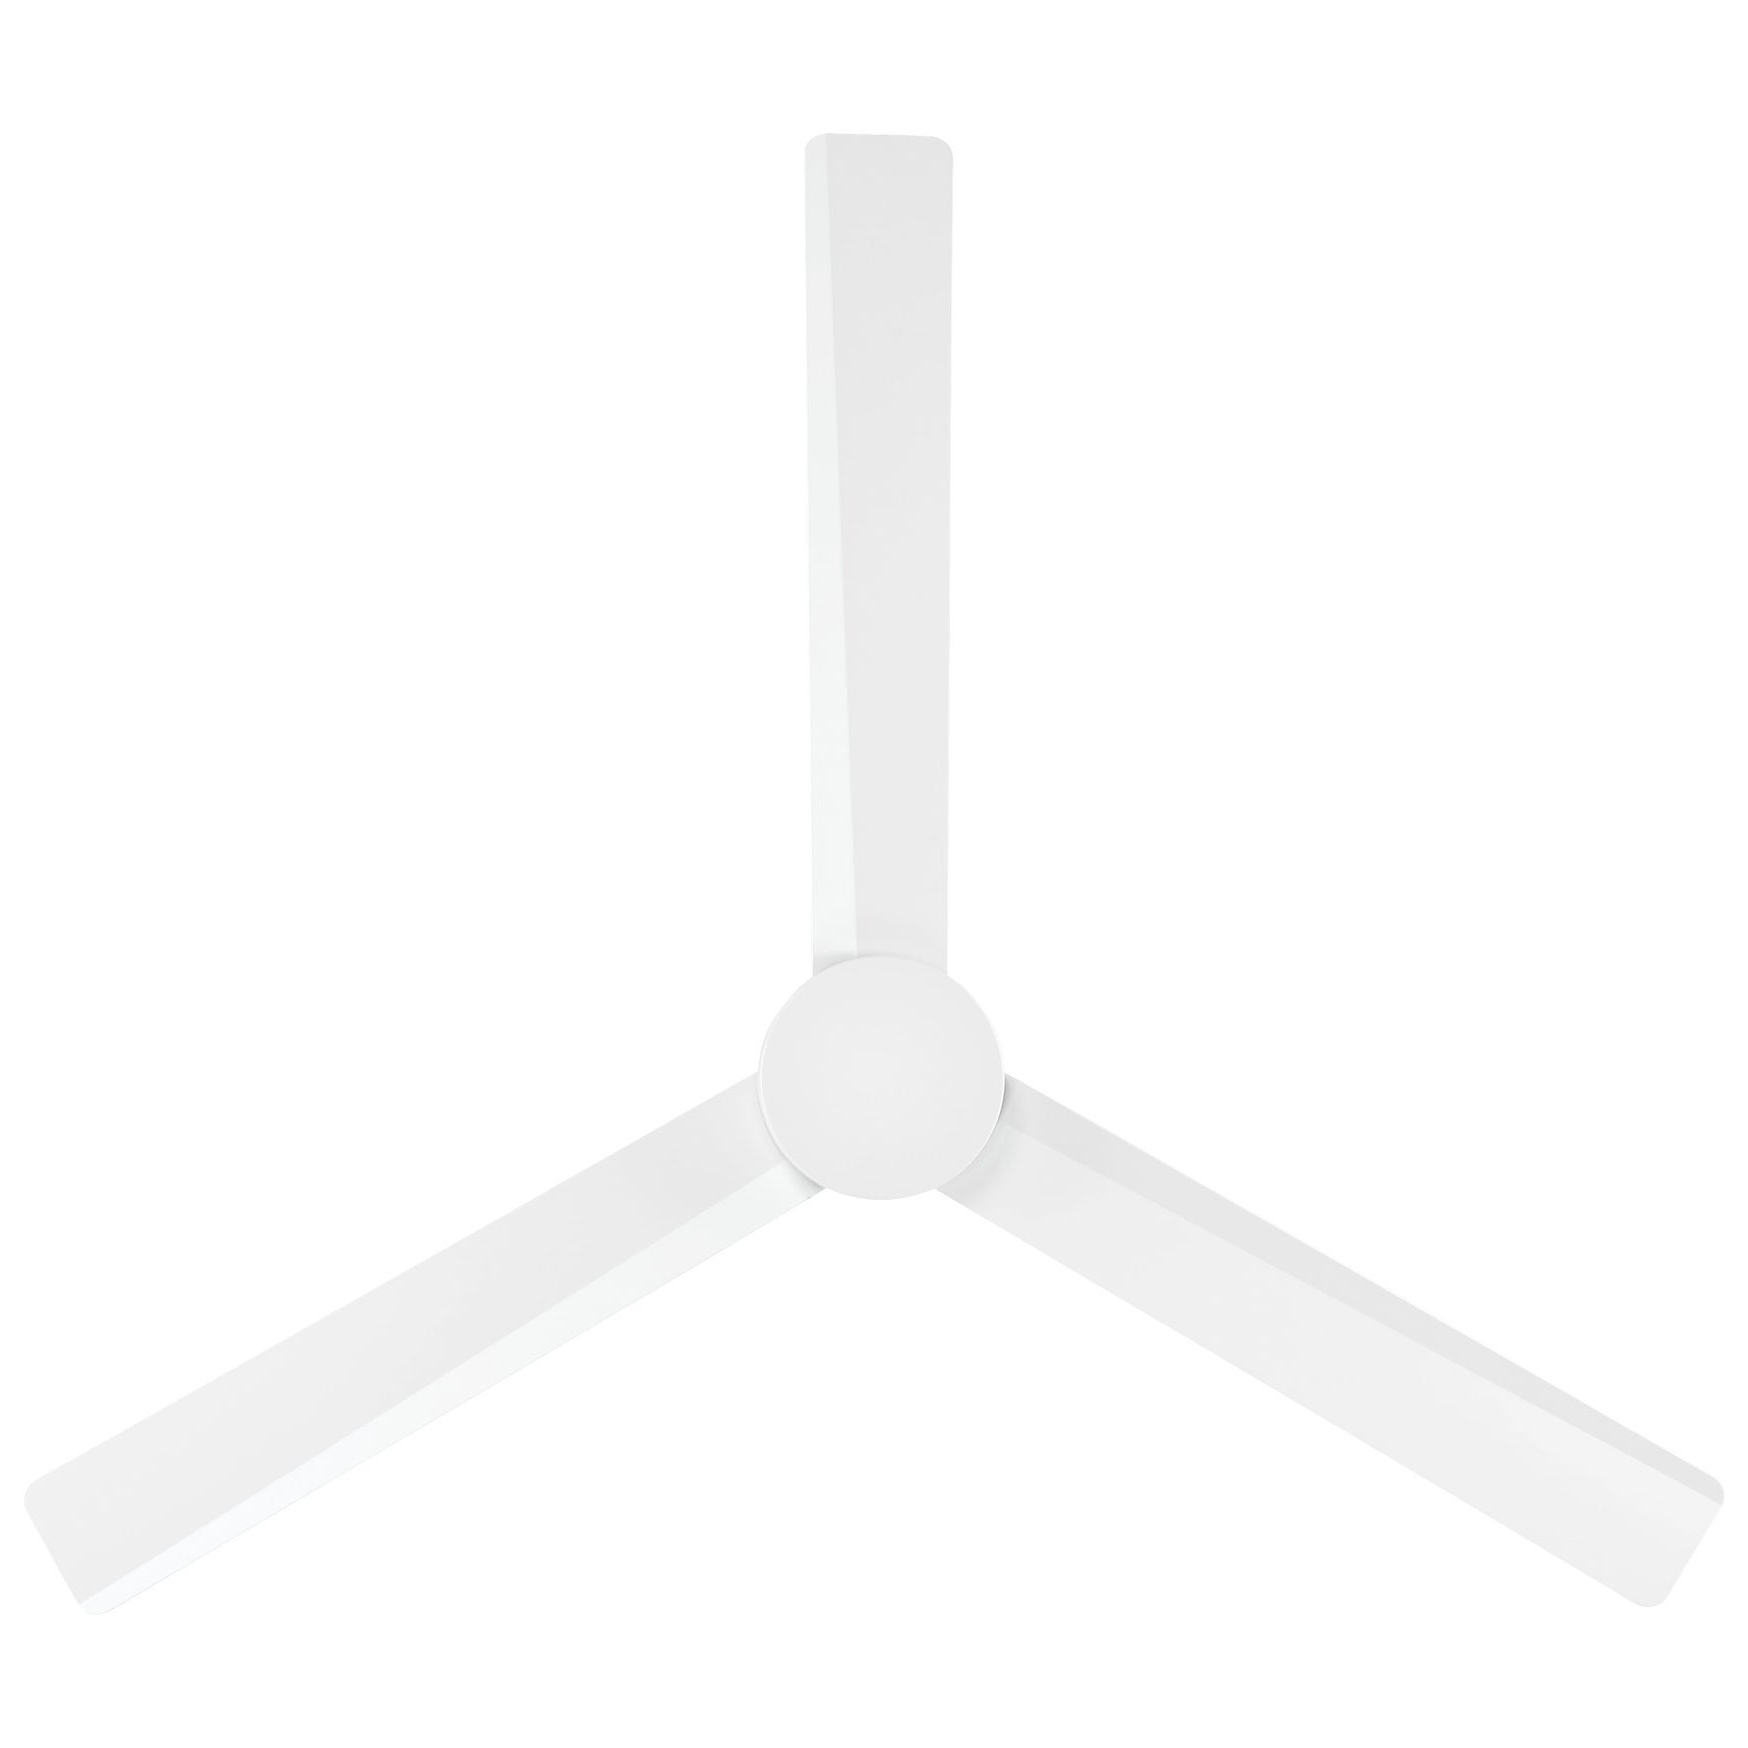 "Minkaaire Roto Xl 62"" 3 Blade Outdoor Ceiling Fan With Wall Control System – Within Well Liked Roto 3 Blade Ceiling Fans (View 20 of 20)"